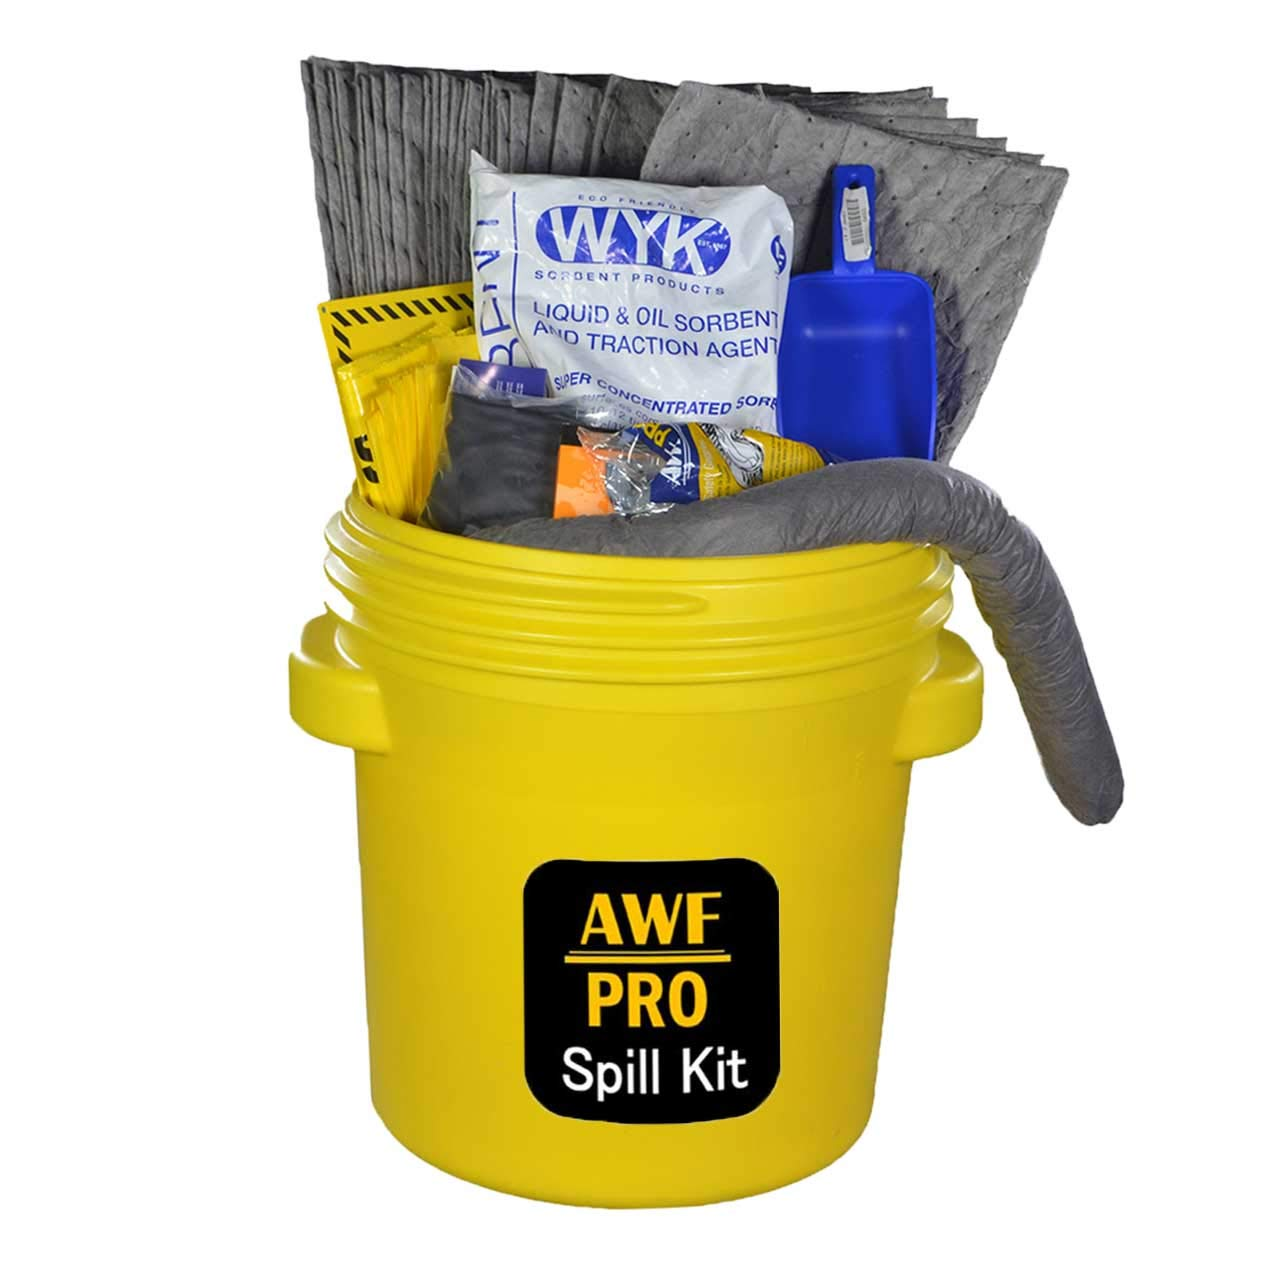 20 Gallon Eco Max 73% OFF Friendly Sorbent Universal Spill Grade Kit Pro Outlet sale feature 4